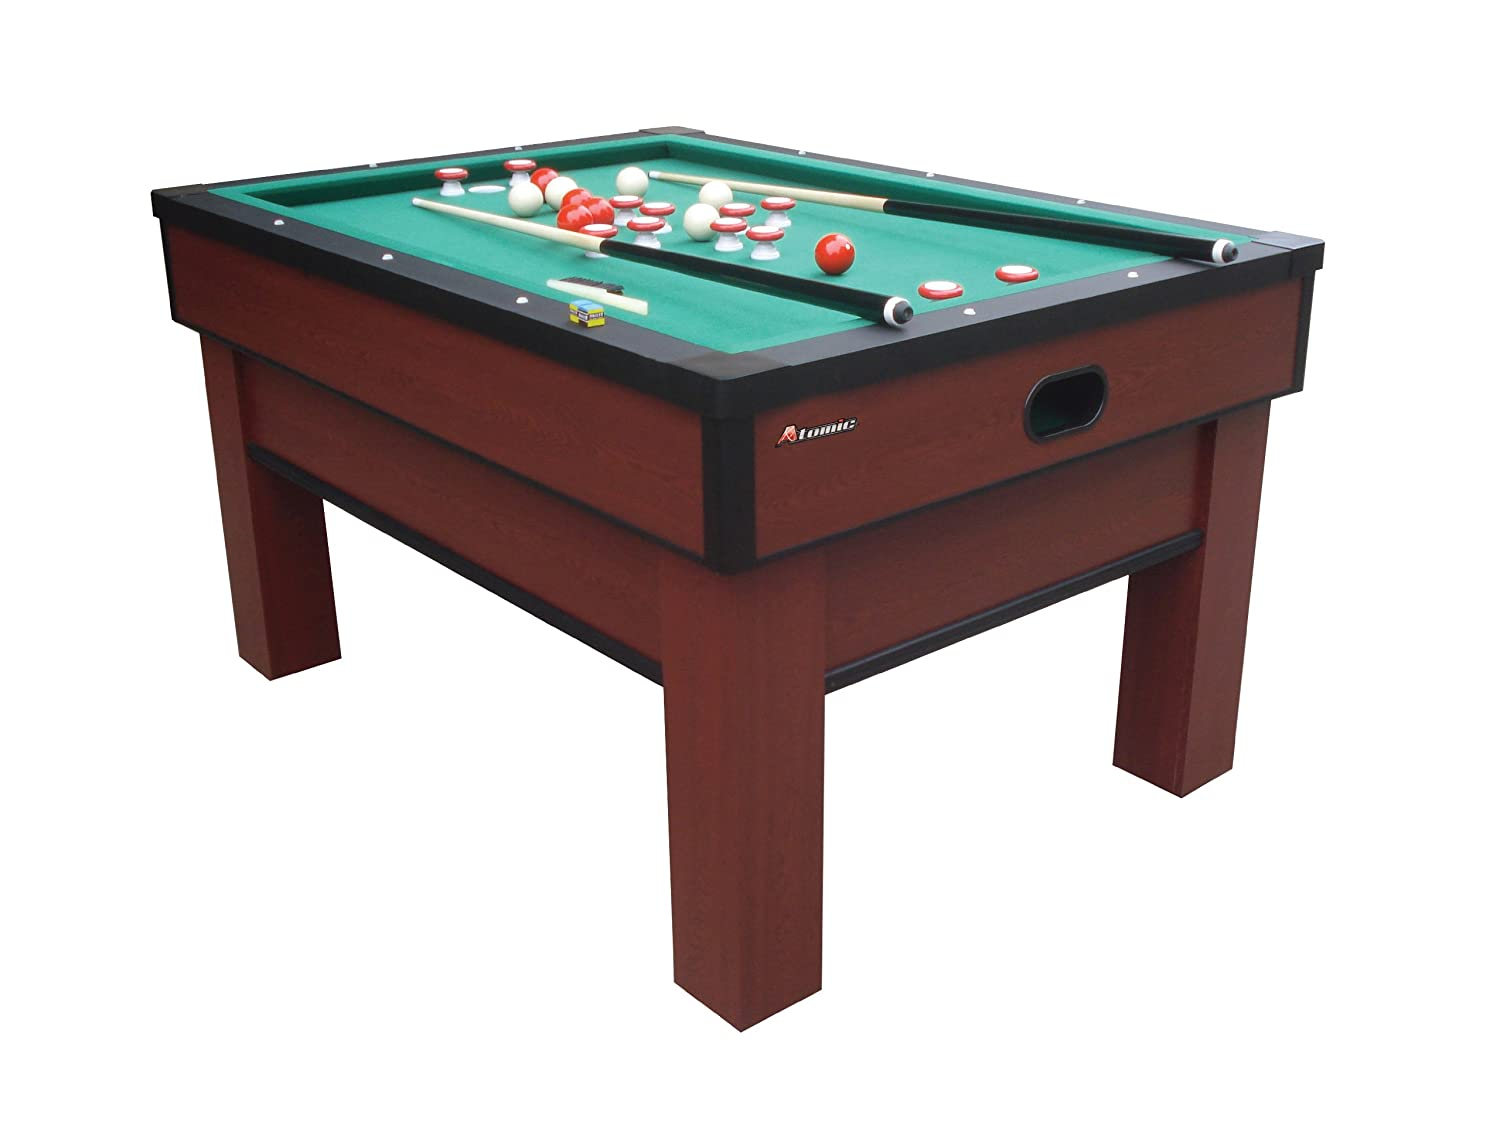 birmingham pool billiard dining classic tables portfolio classics table billiards timeless